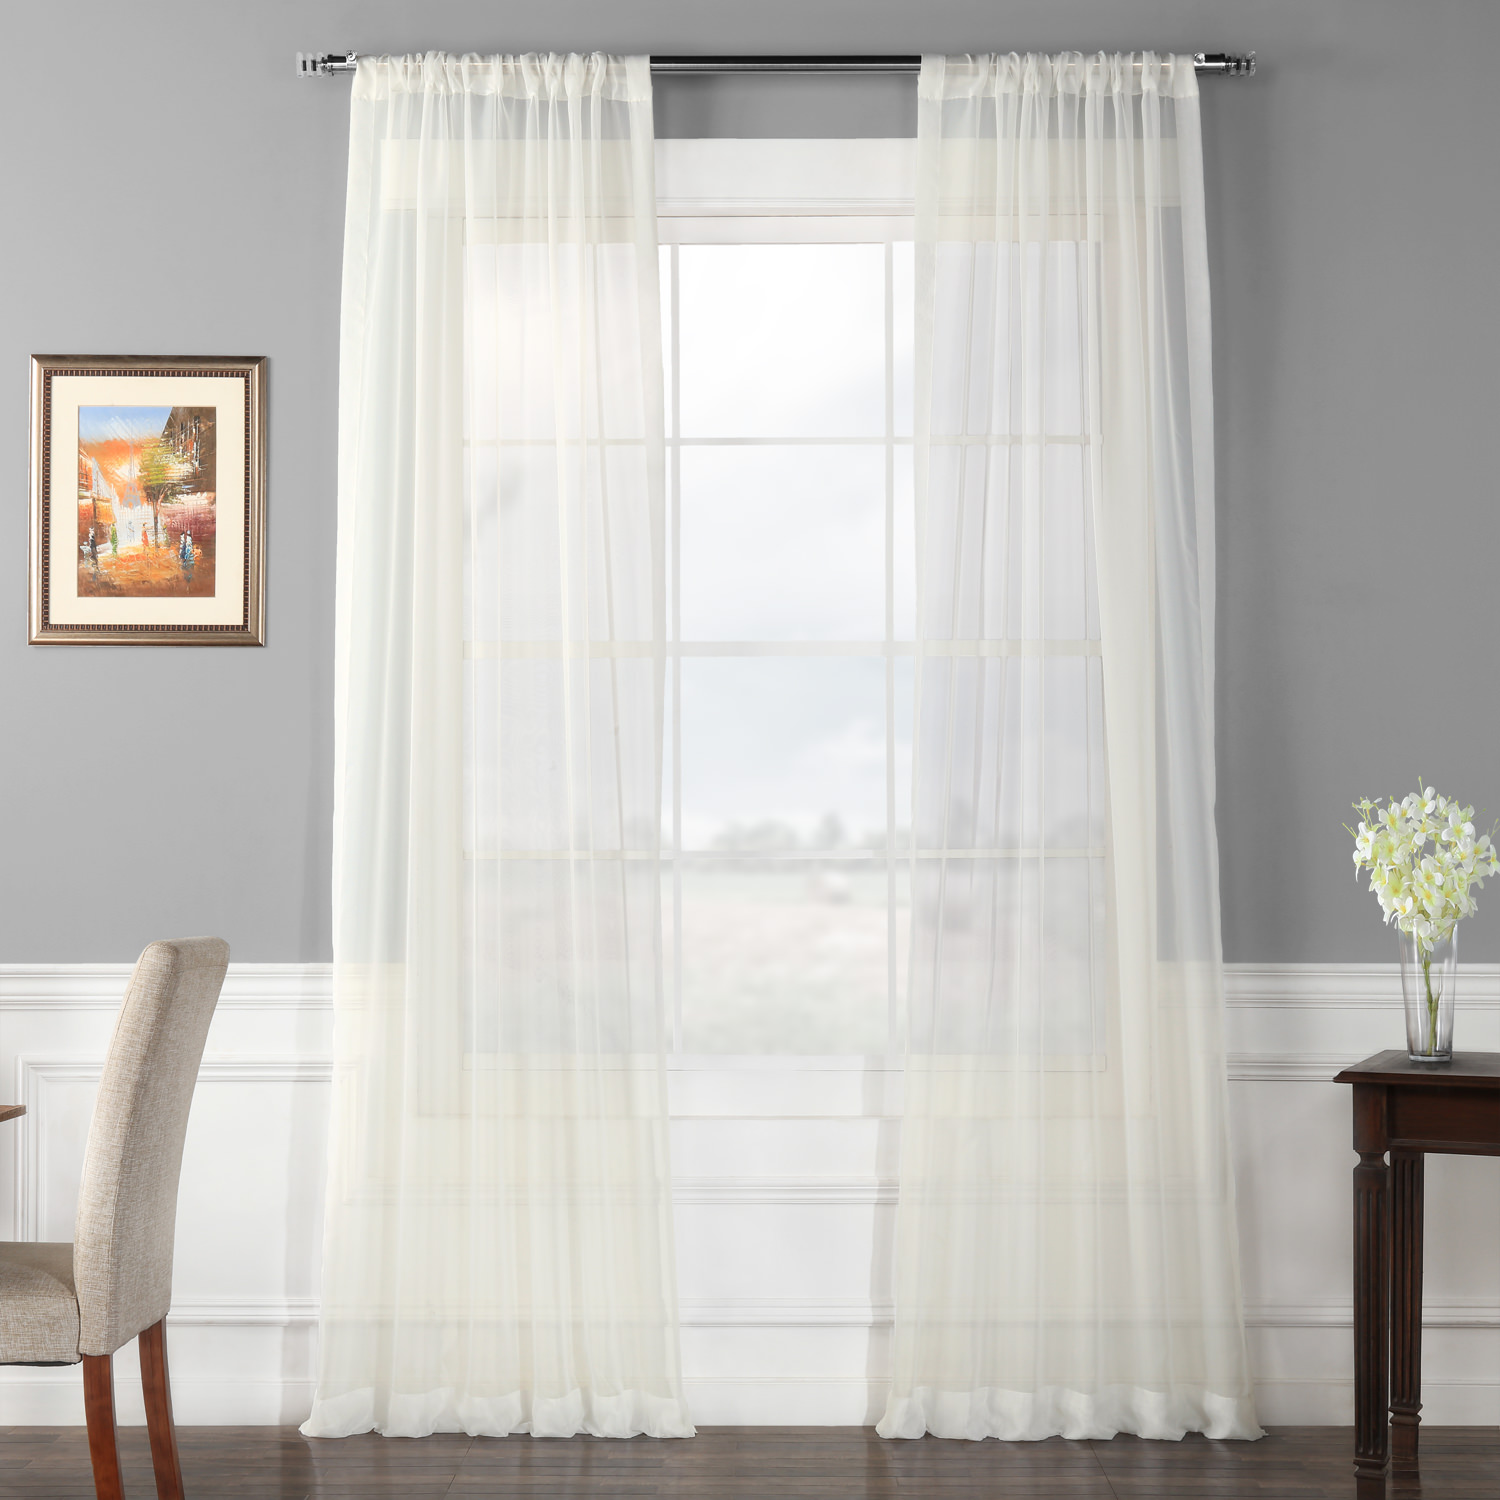 Pair (2 Panels) Solid Off White Voile Poly Sheer Curtain